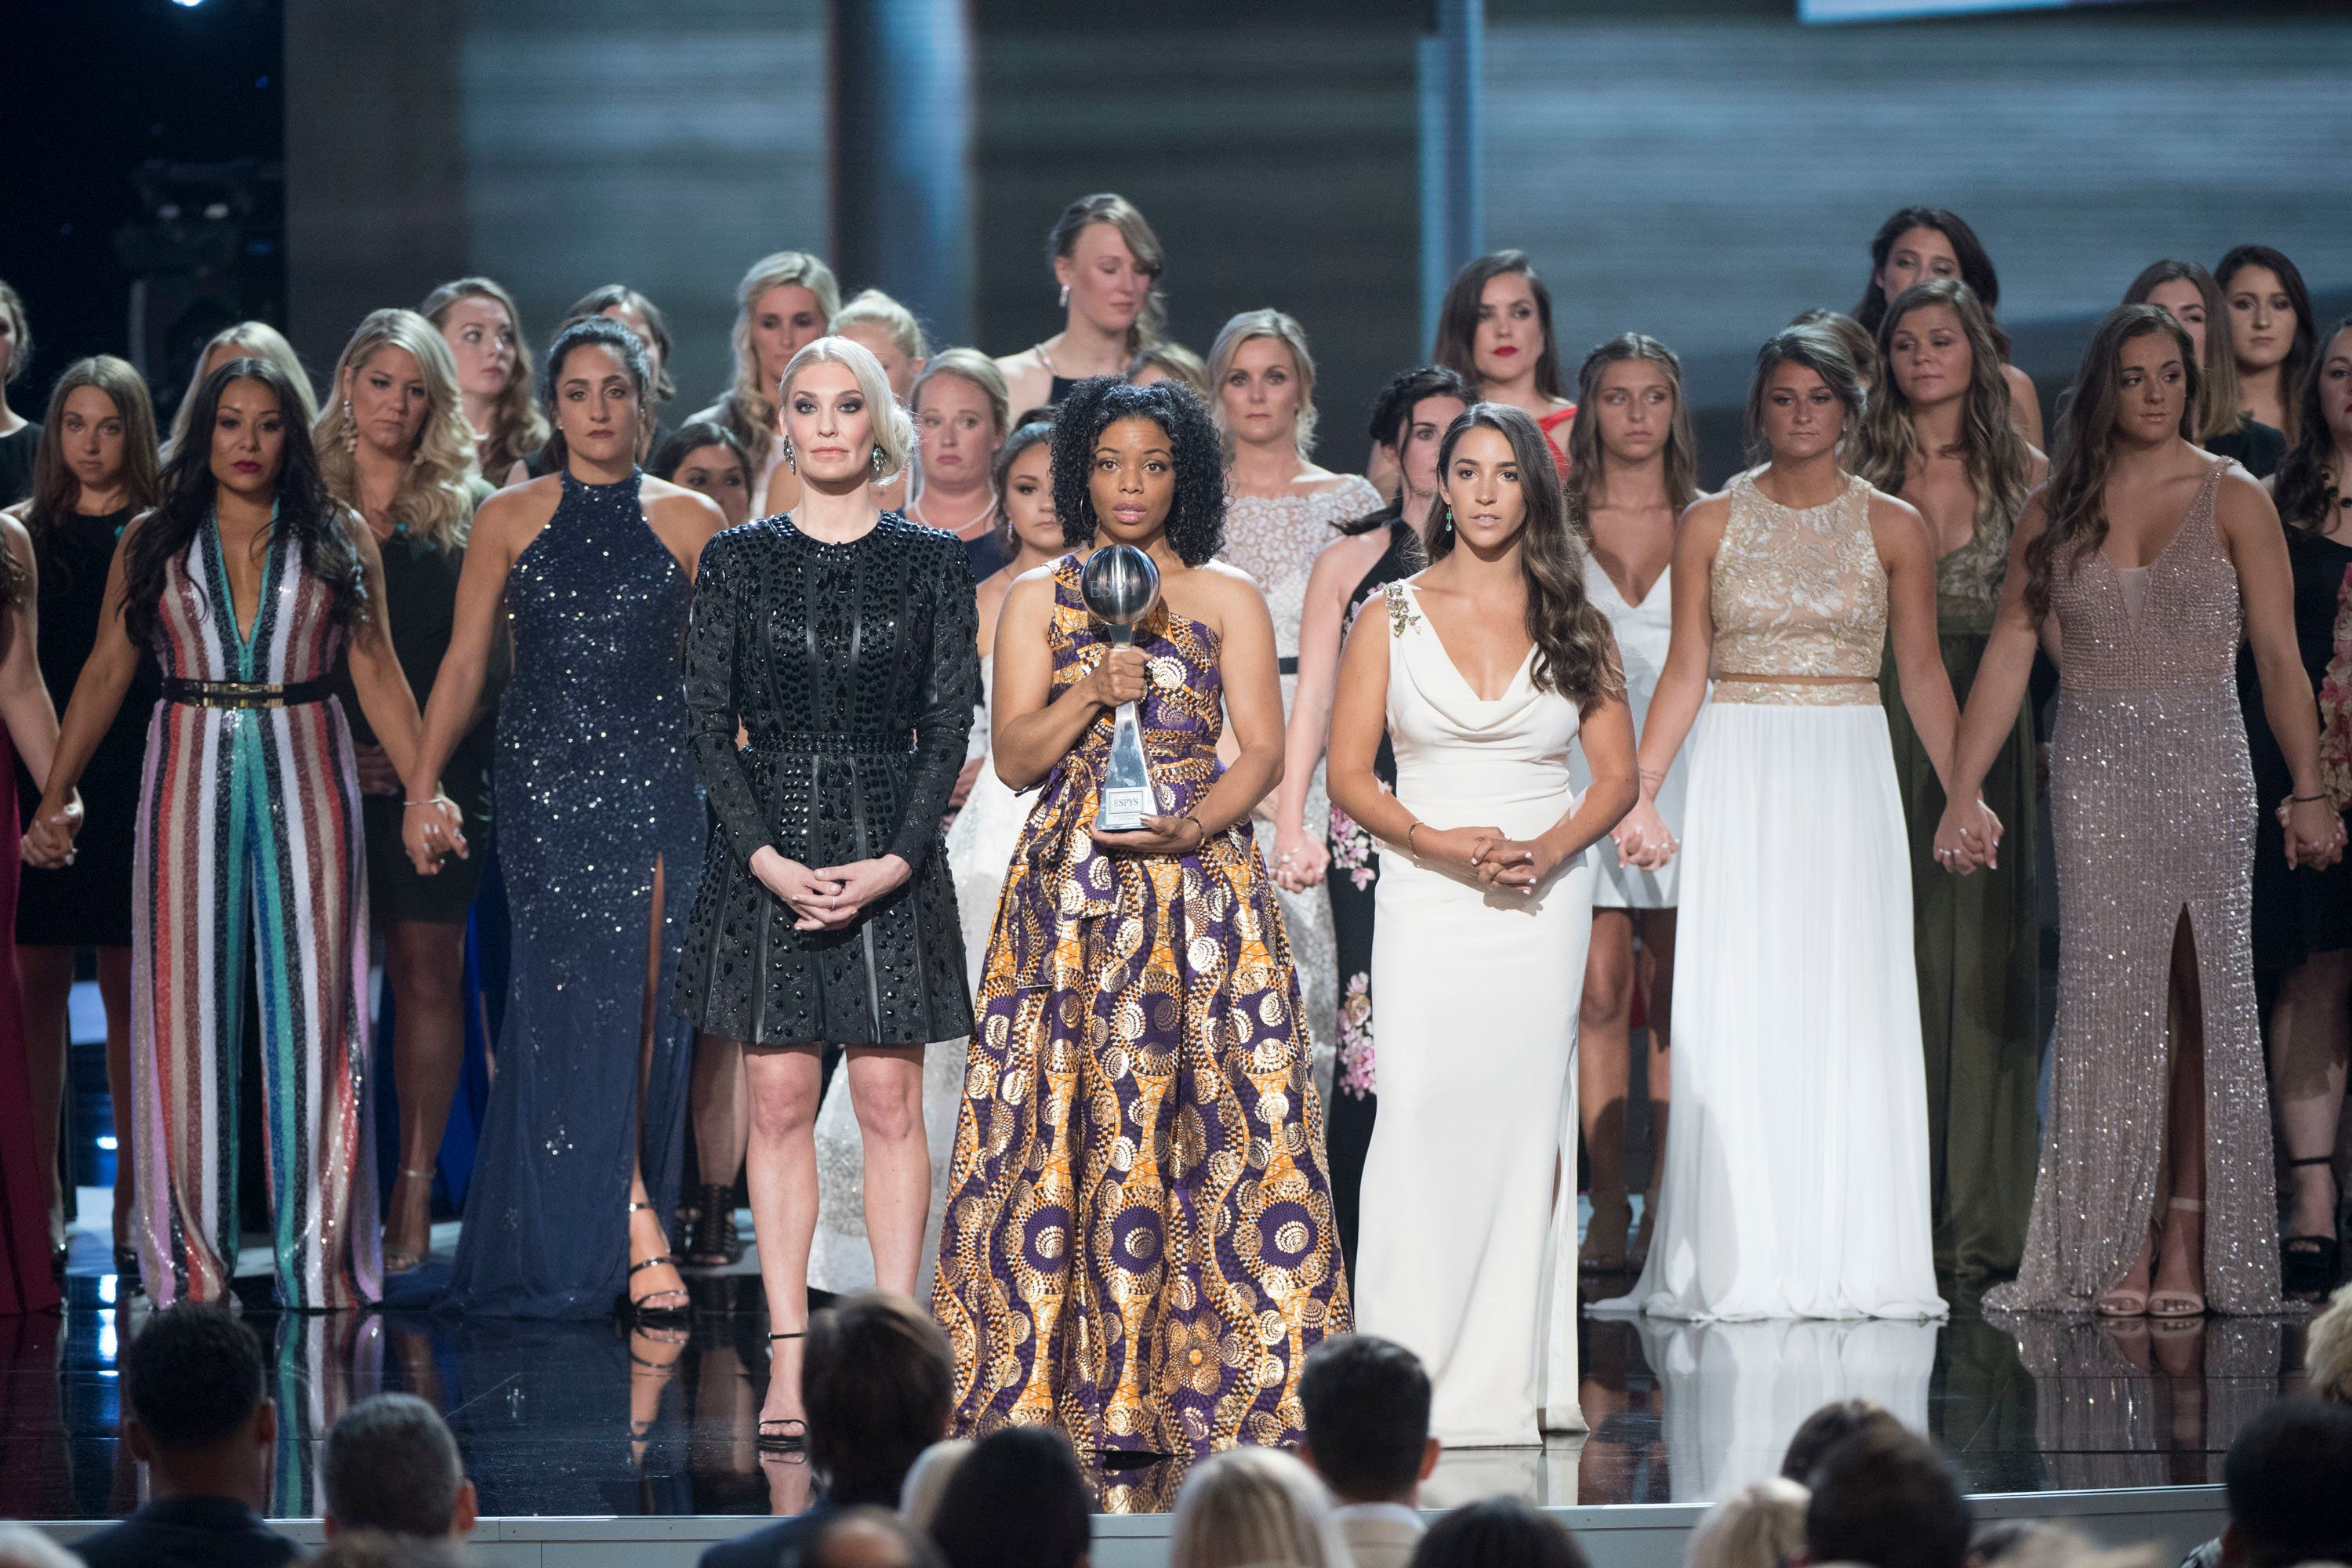 Nassar abuse survivors accept Ashe courage award at ESPYs